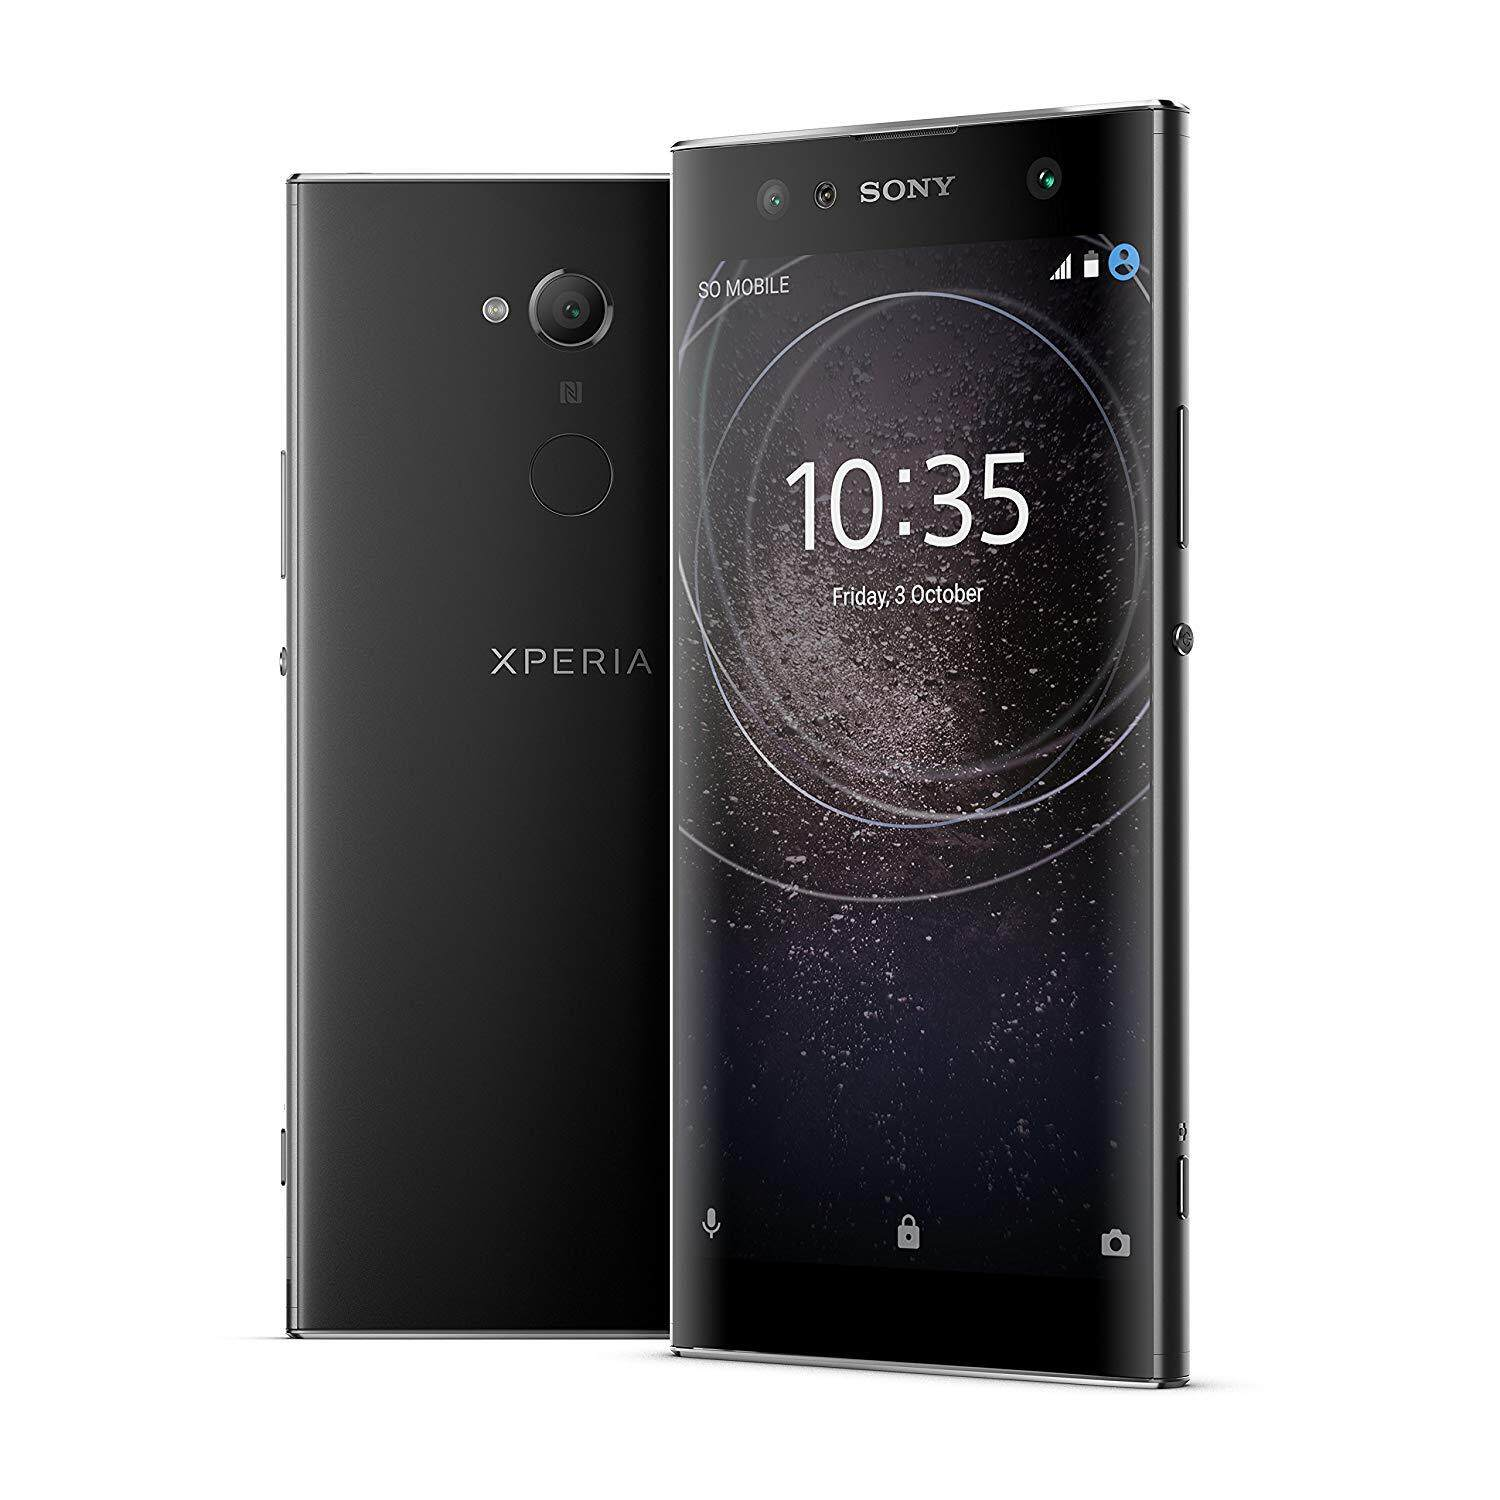 Sony Xperia Mobiles & Tablets Mobiles price in Malaysia Best Sony Xperia Mobiles & Tablets Mobiles